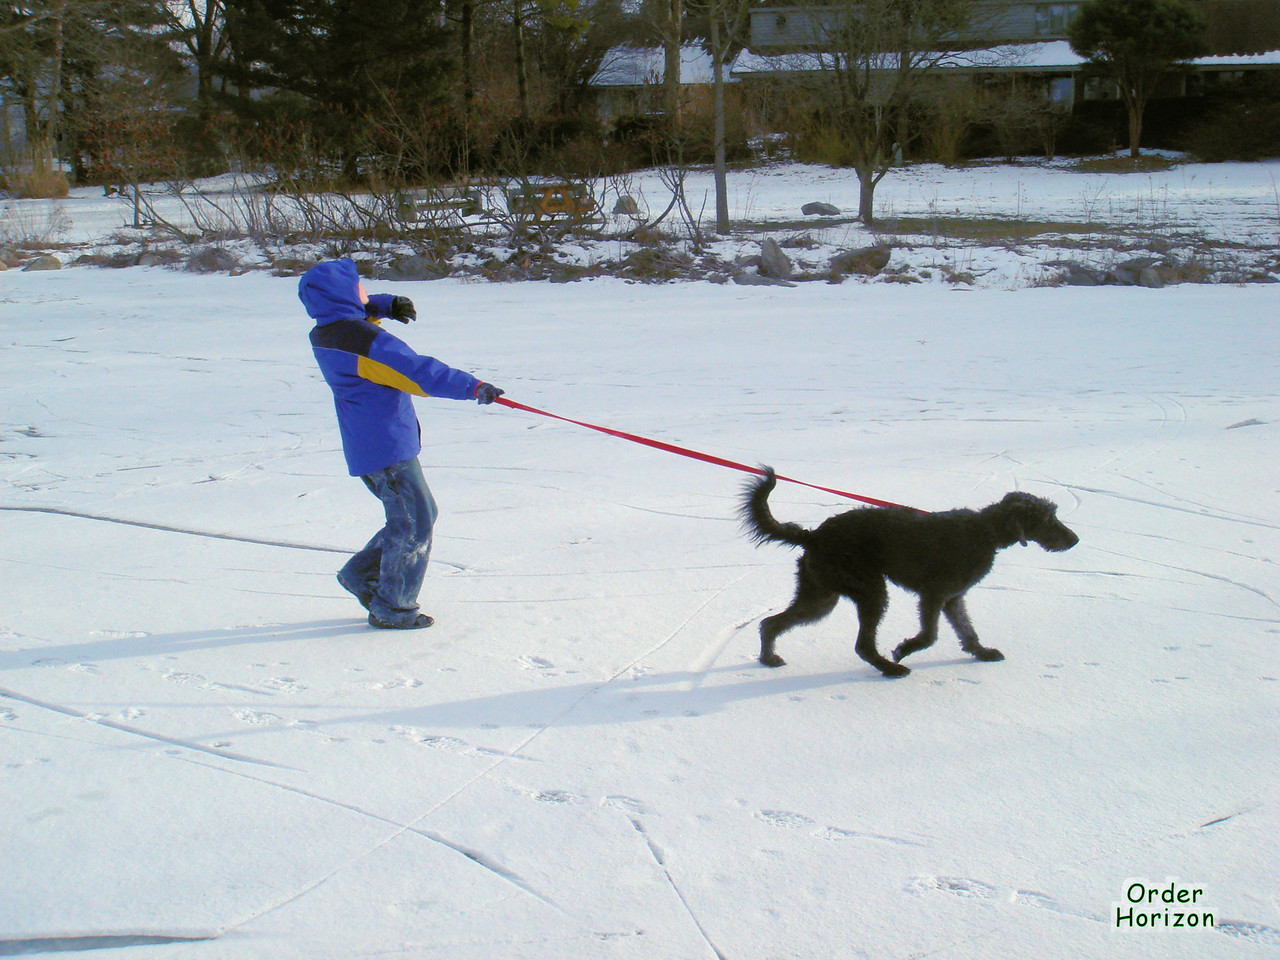 Best to have a sled if your dog wants to pull on ice